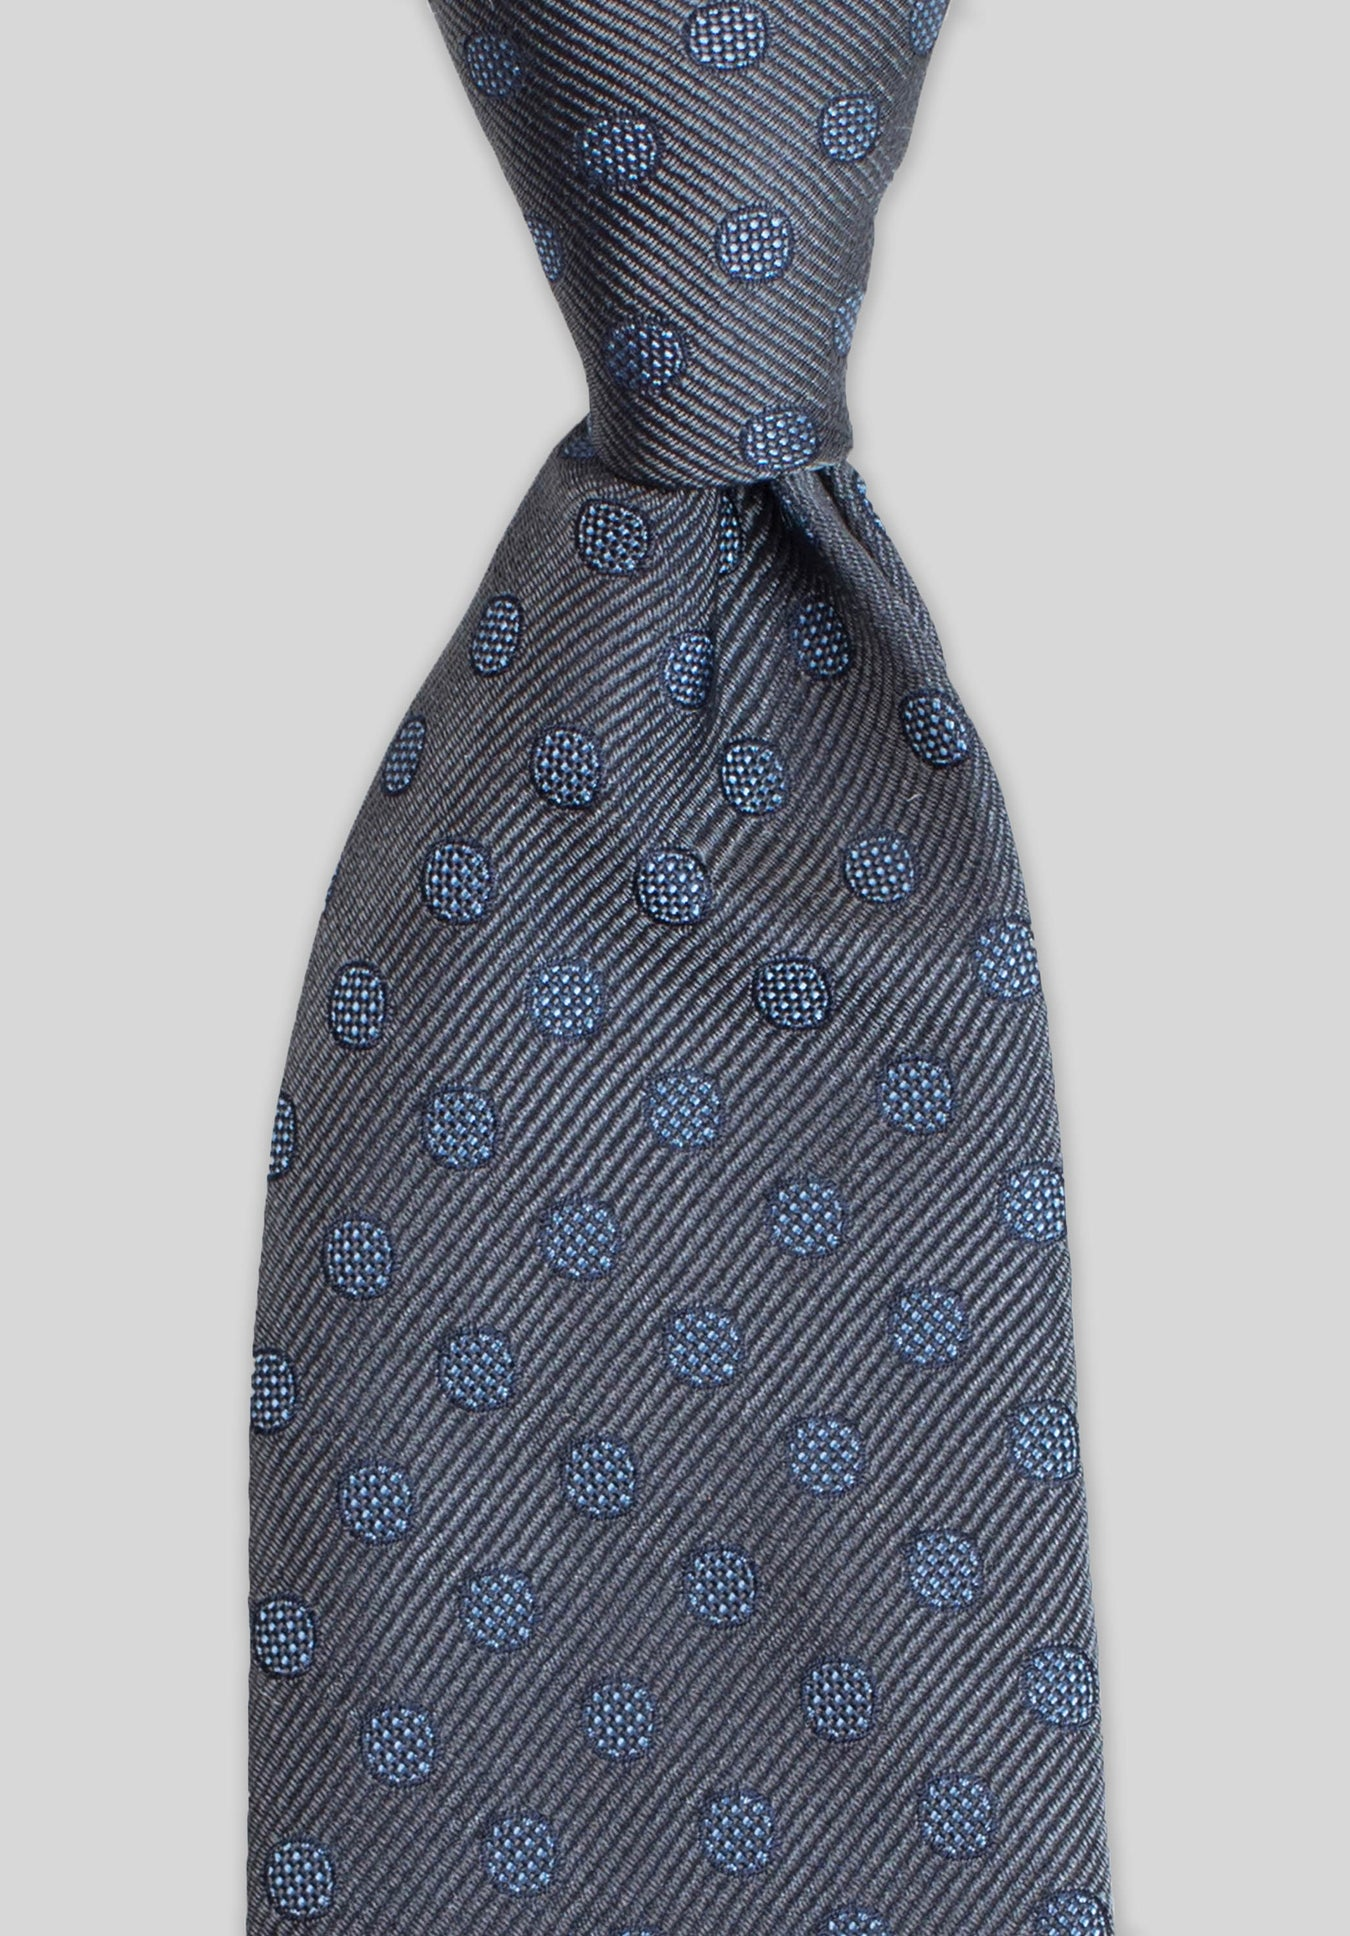 HATCH SPOT 7.5CM TIE - Grey